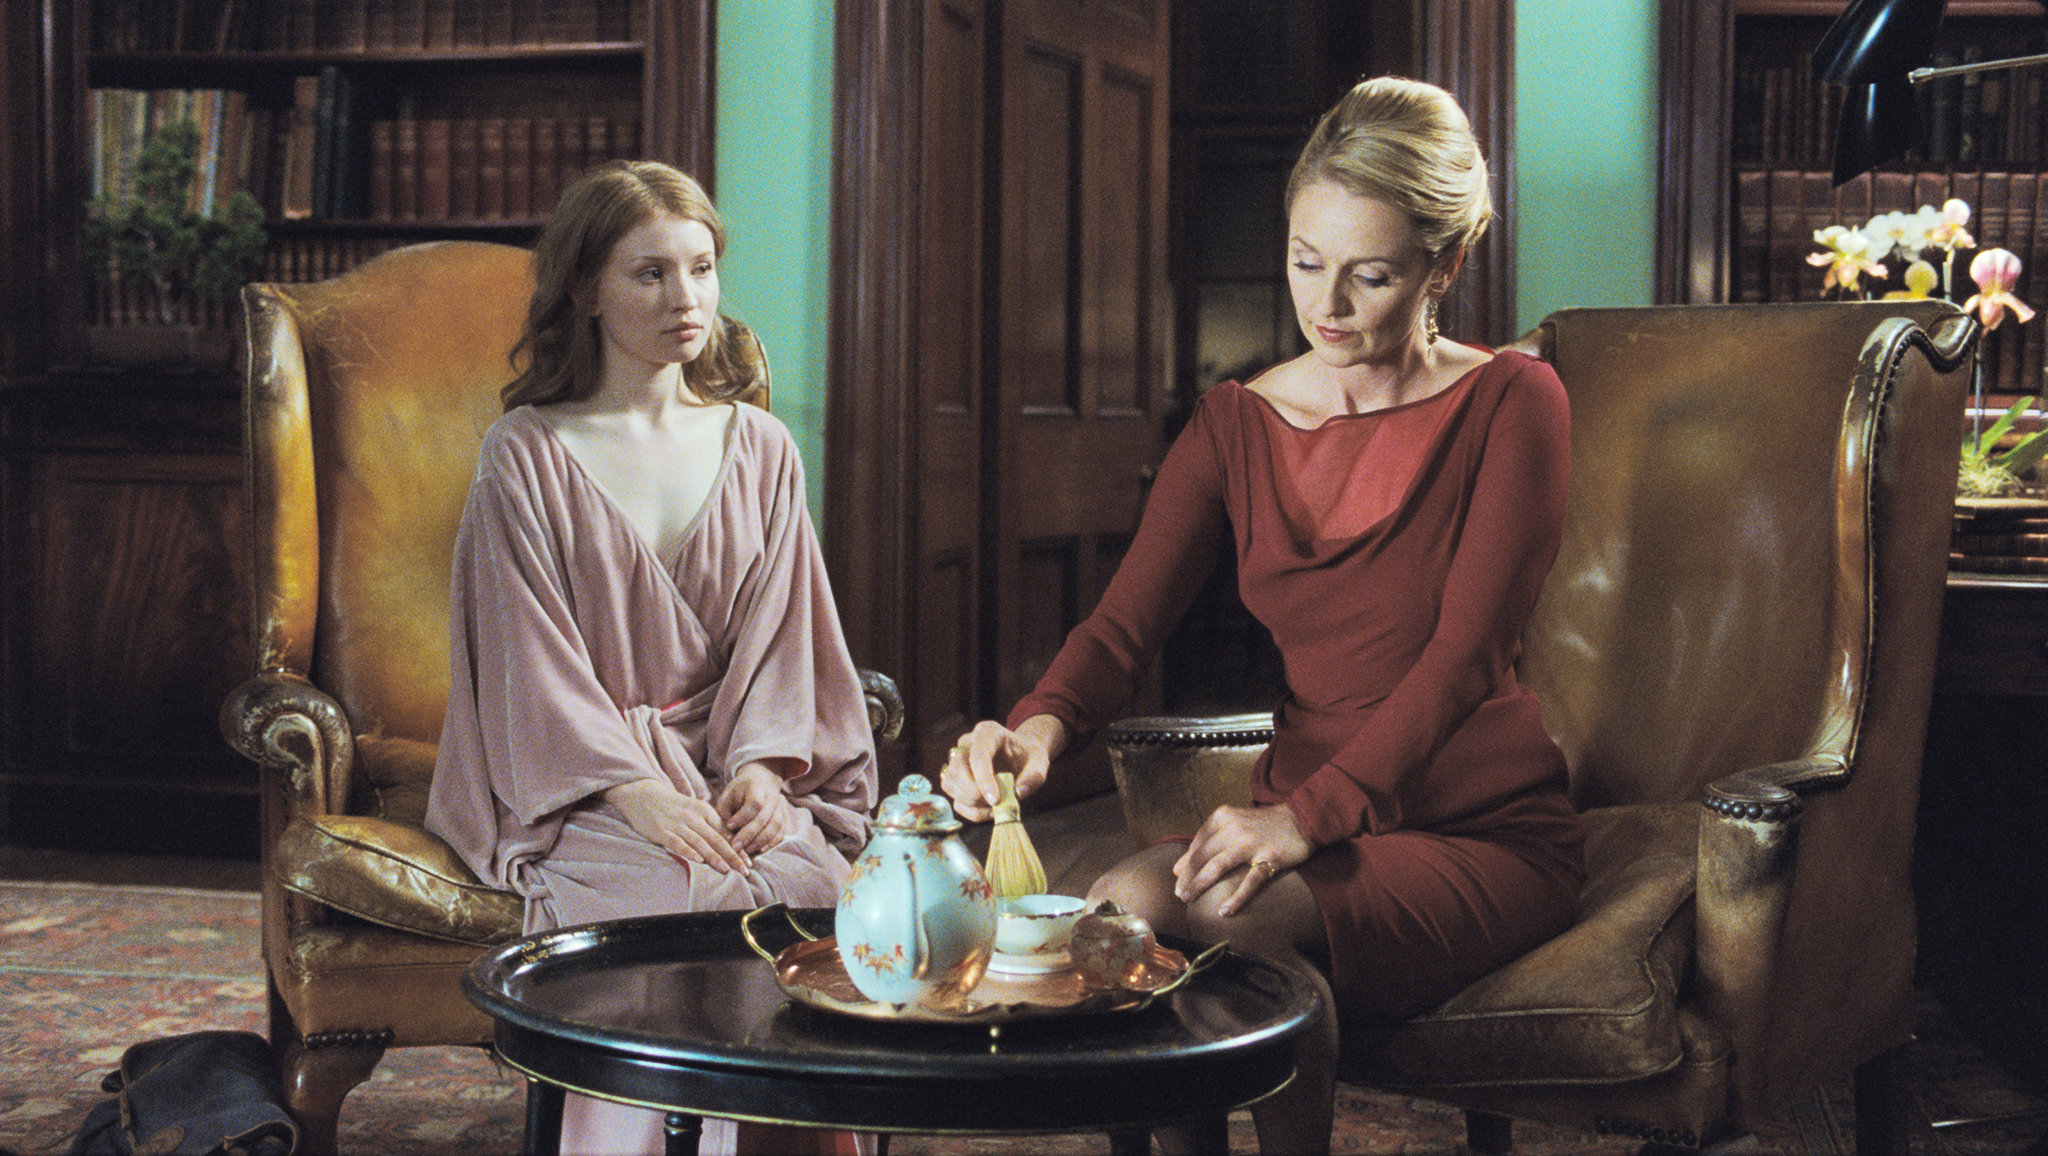 Emily Browning star as Lucy and Rachael Blake star as Clara in IFC Films' Sleeping Beauty (2011)